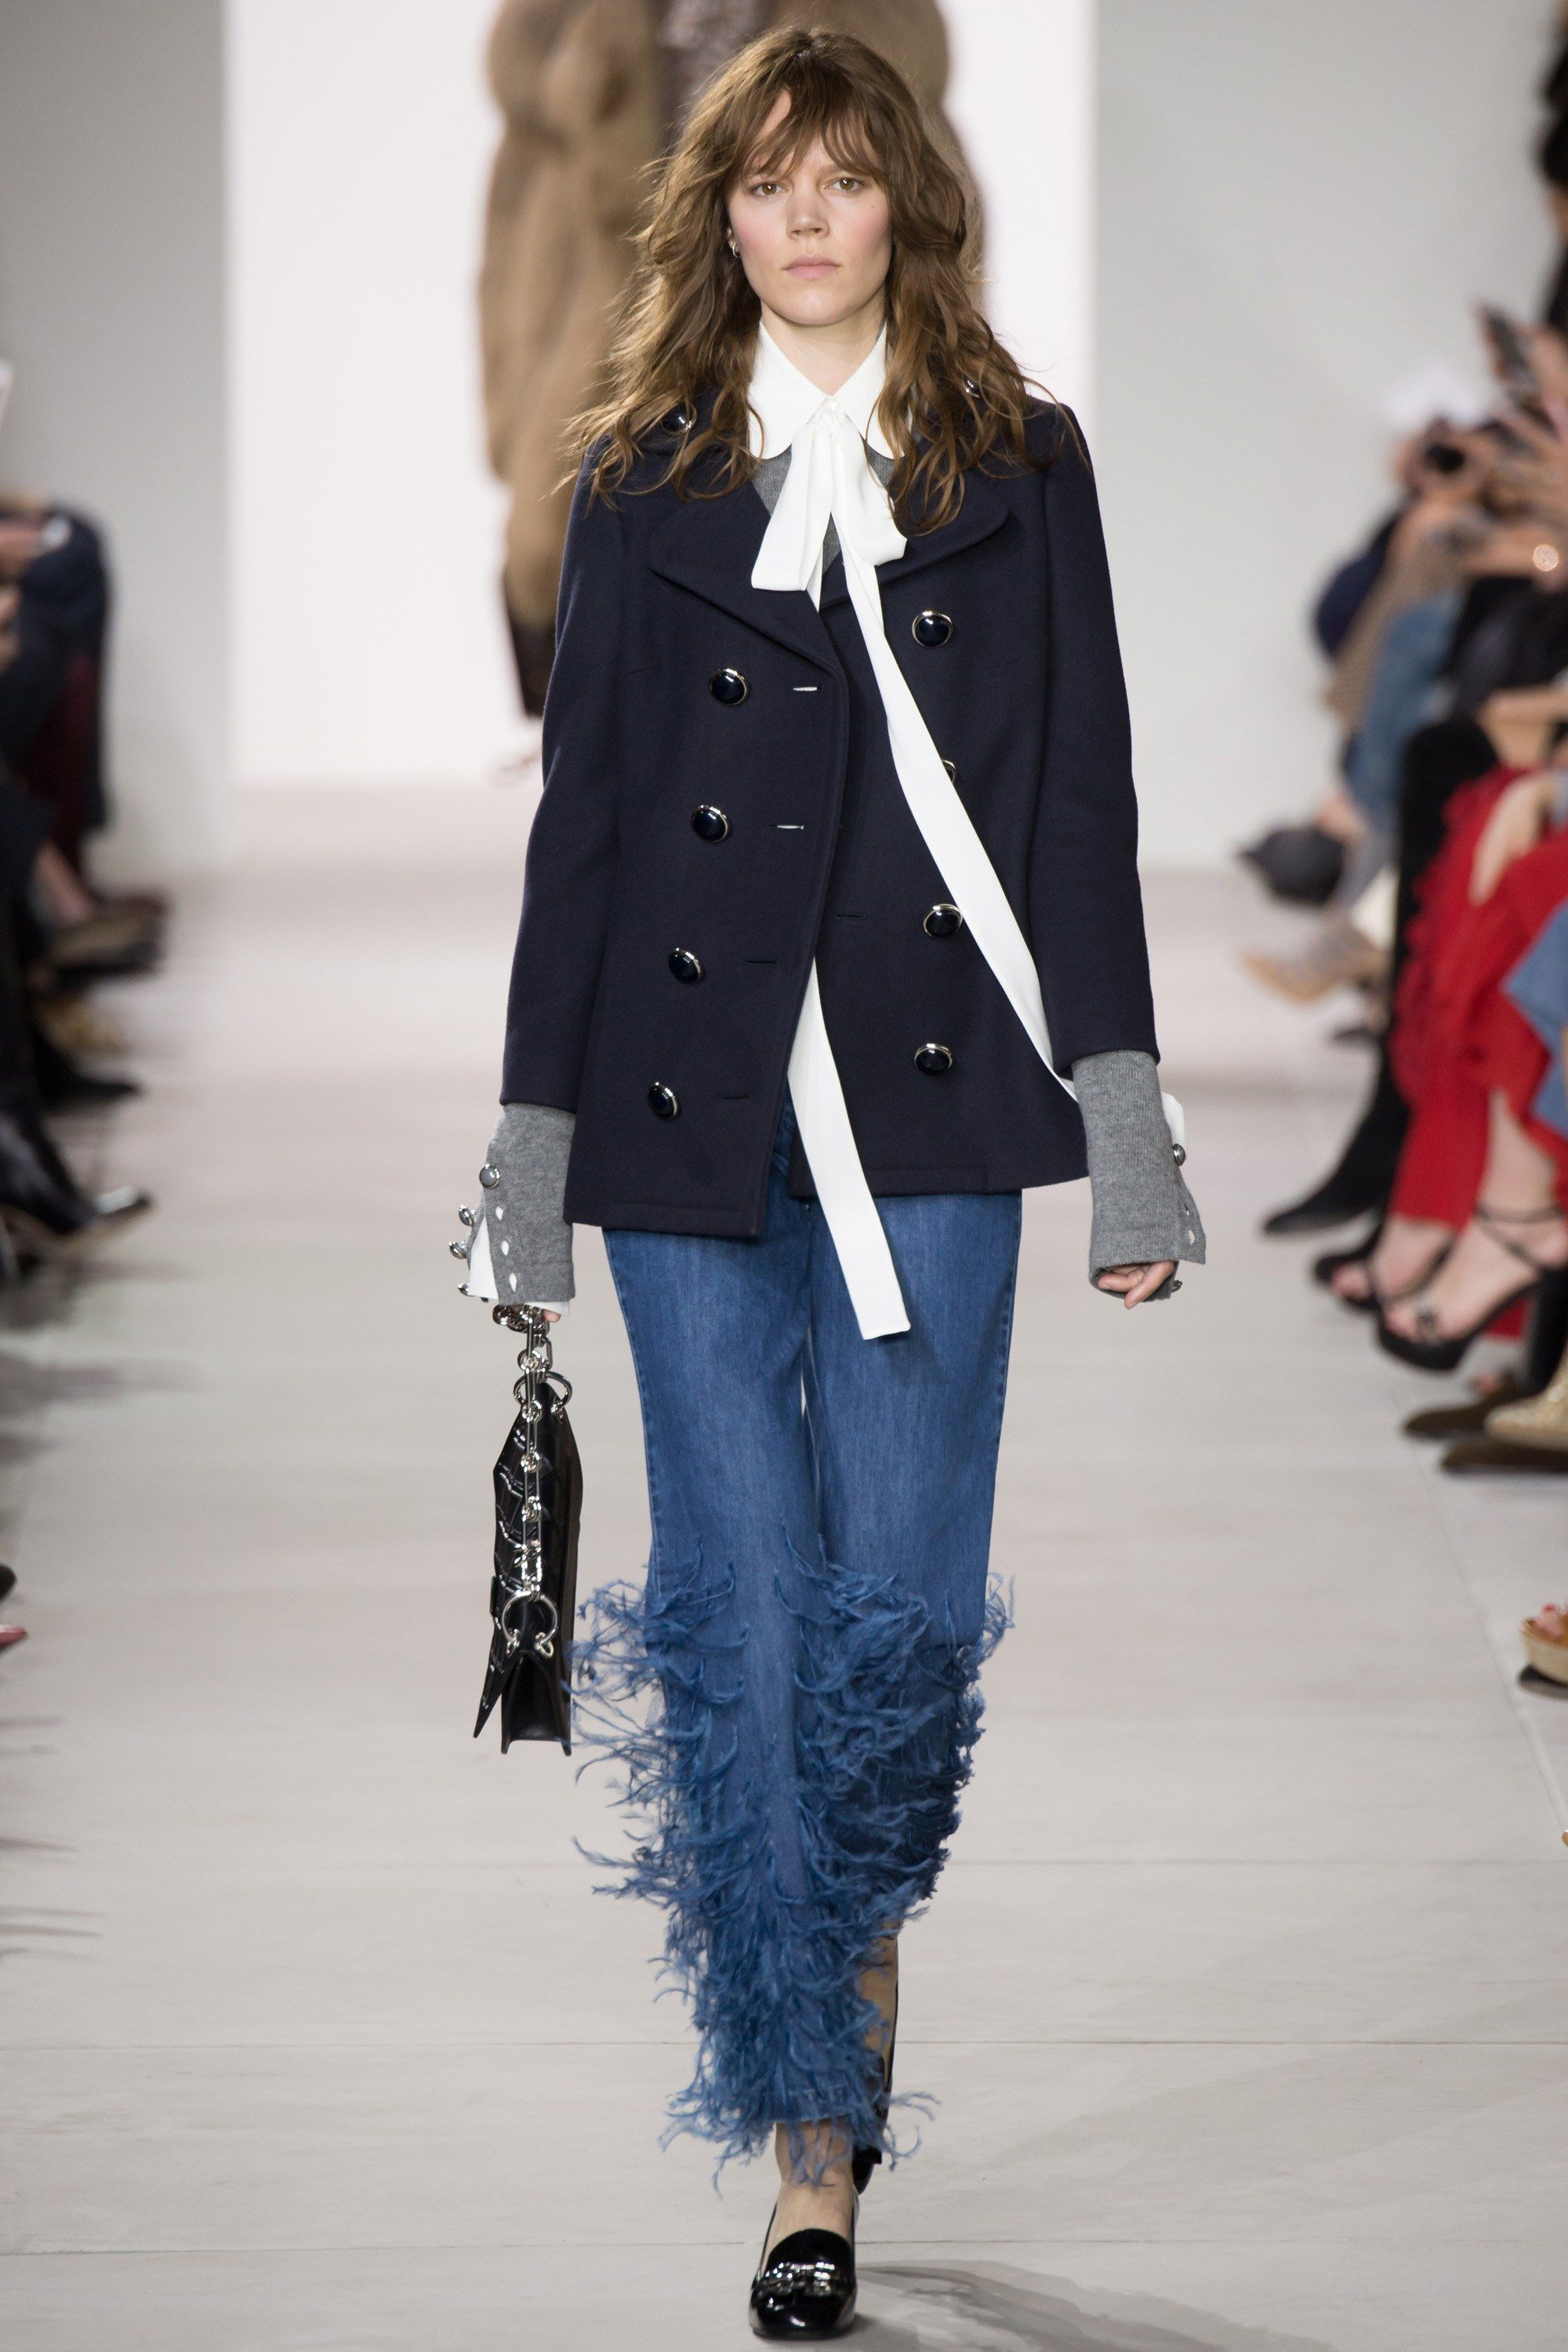 Michael Kors Collection Fall 2016 Ready-to-Wear Fashion Show - Freja Beha Erichsen